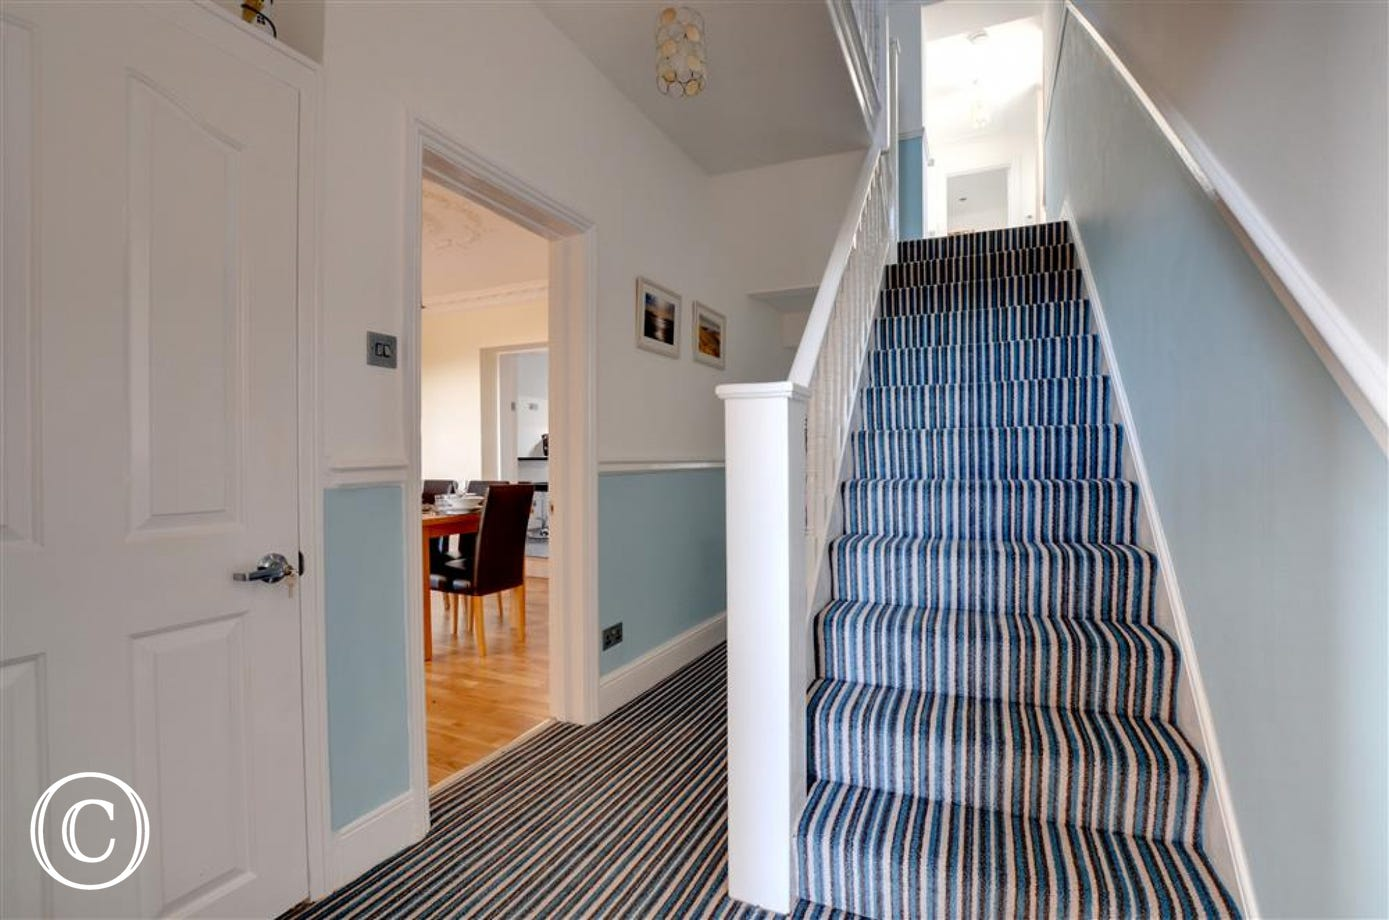 The ground floor entrance has a long hallway with hand built surf board storage and stairs to the first floor